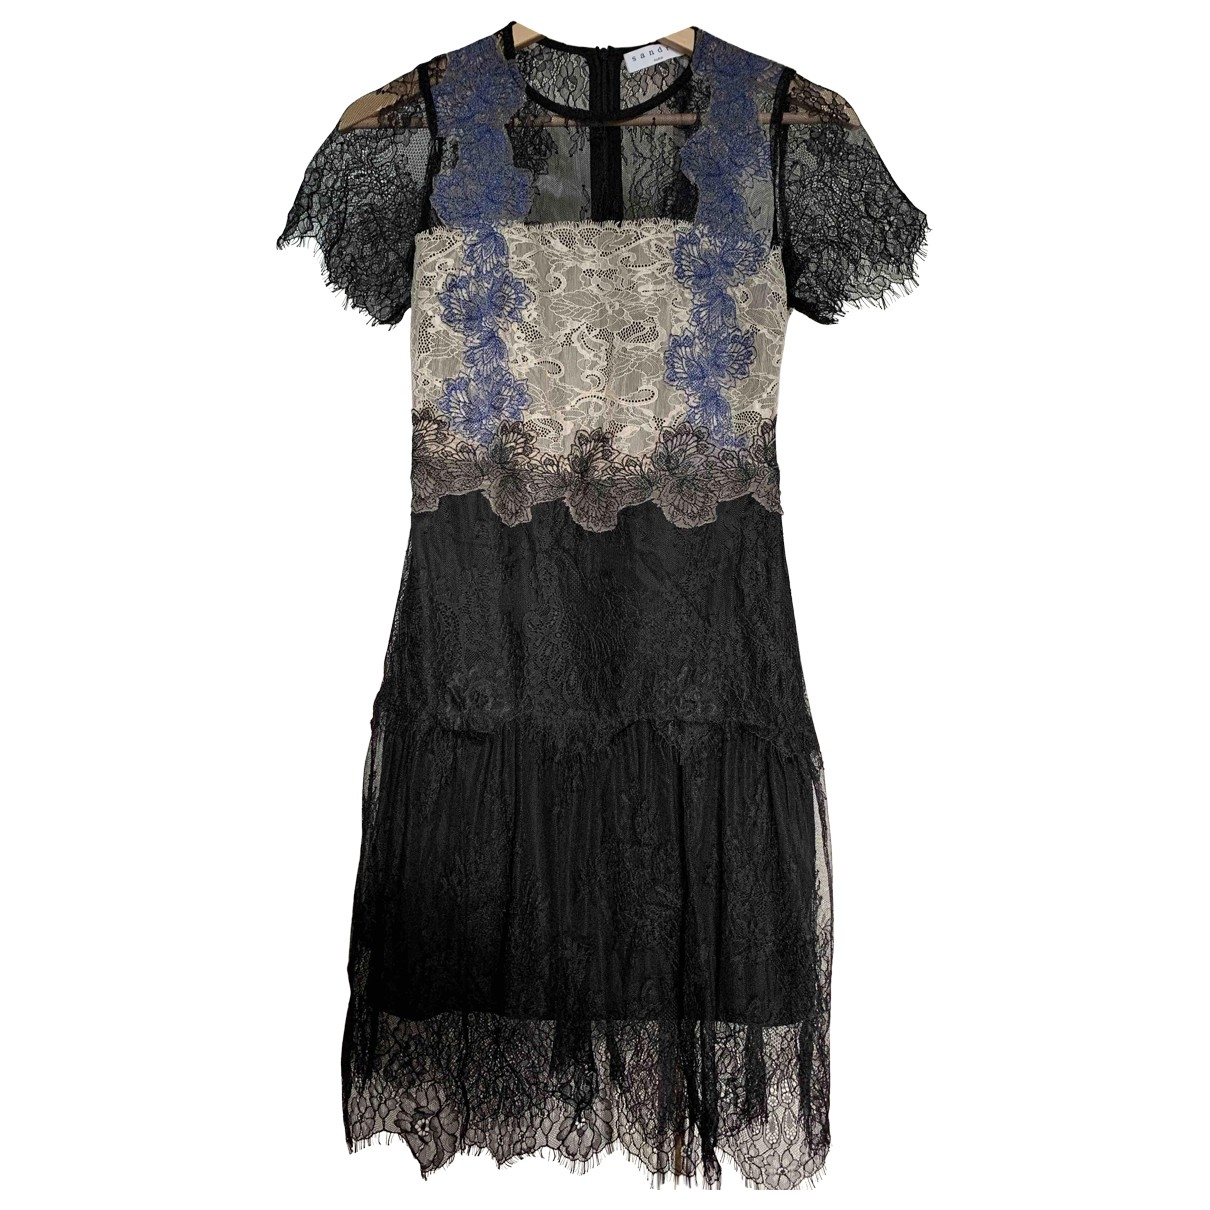 Sandro Spring Summer 2019 Black dress for Women 1 0-5